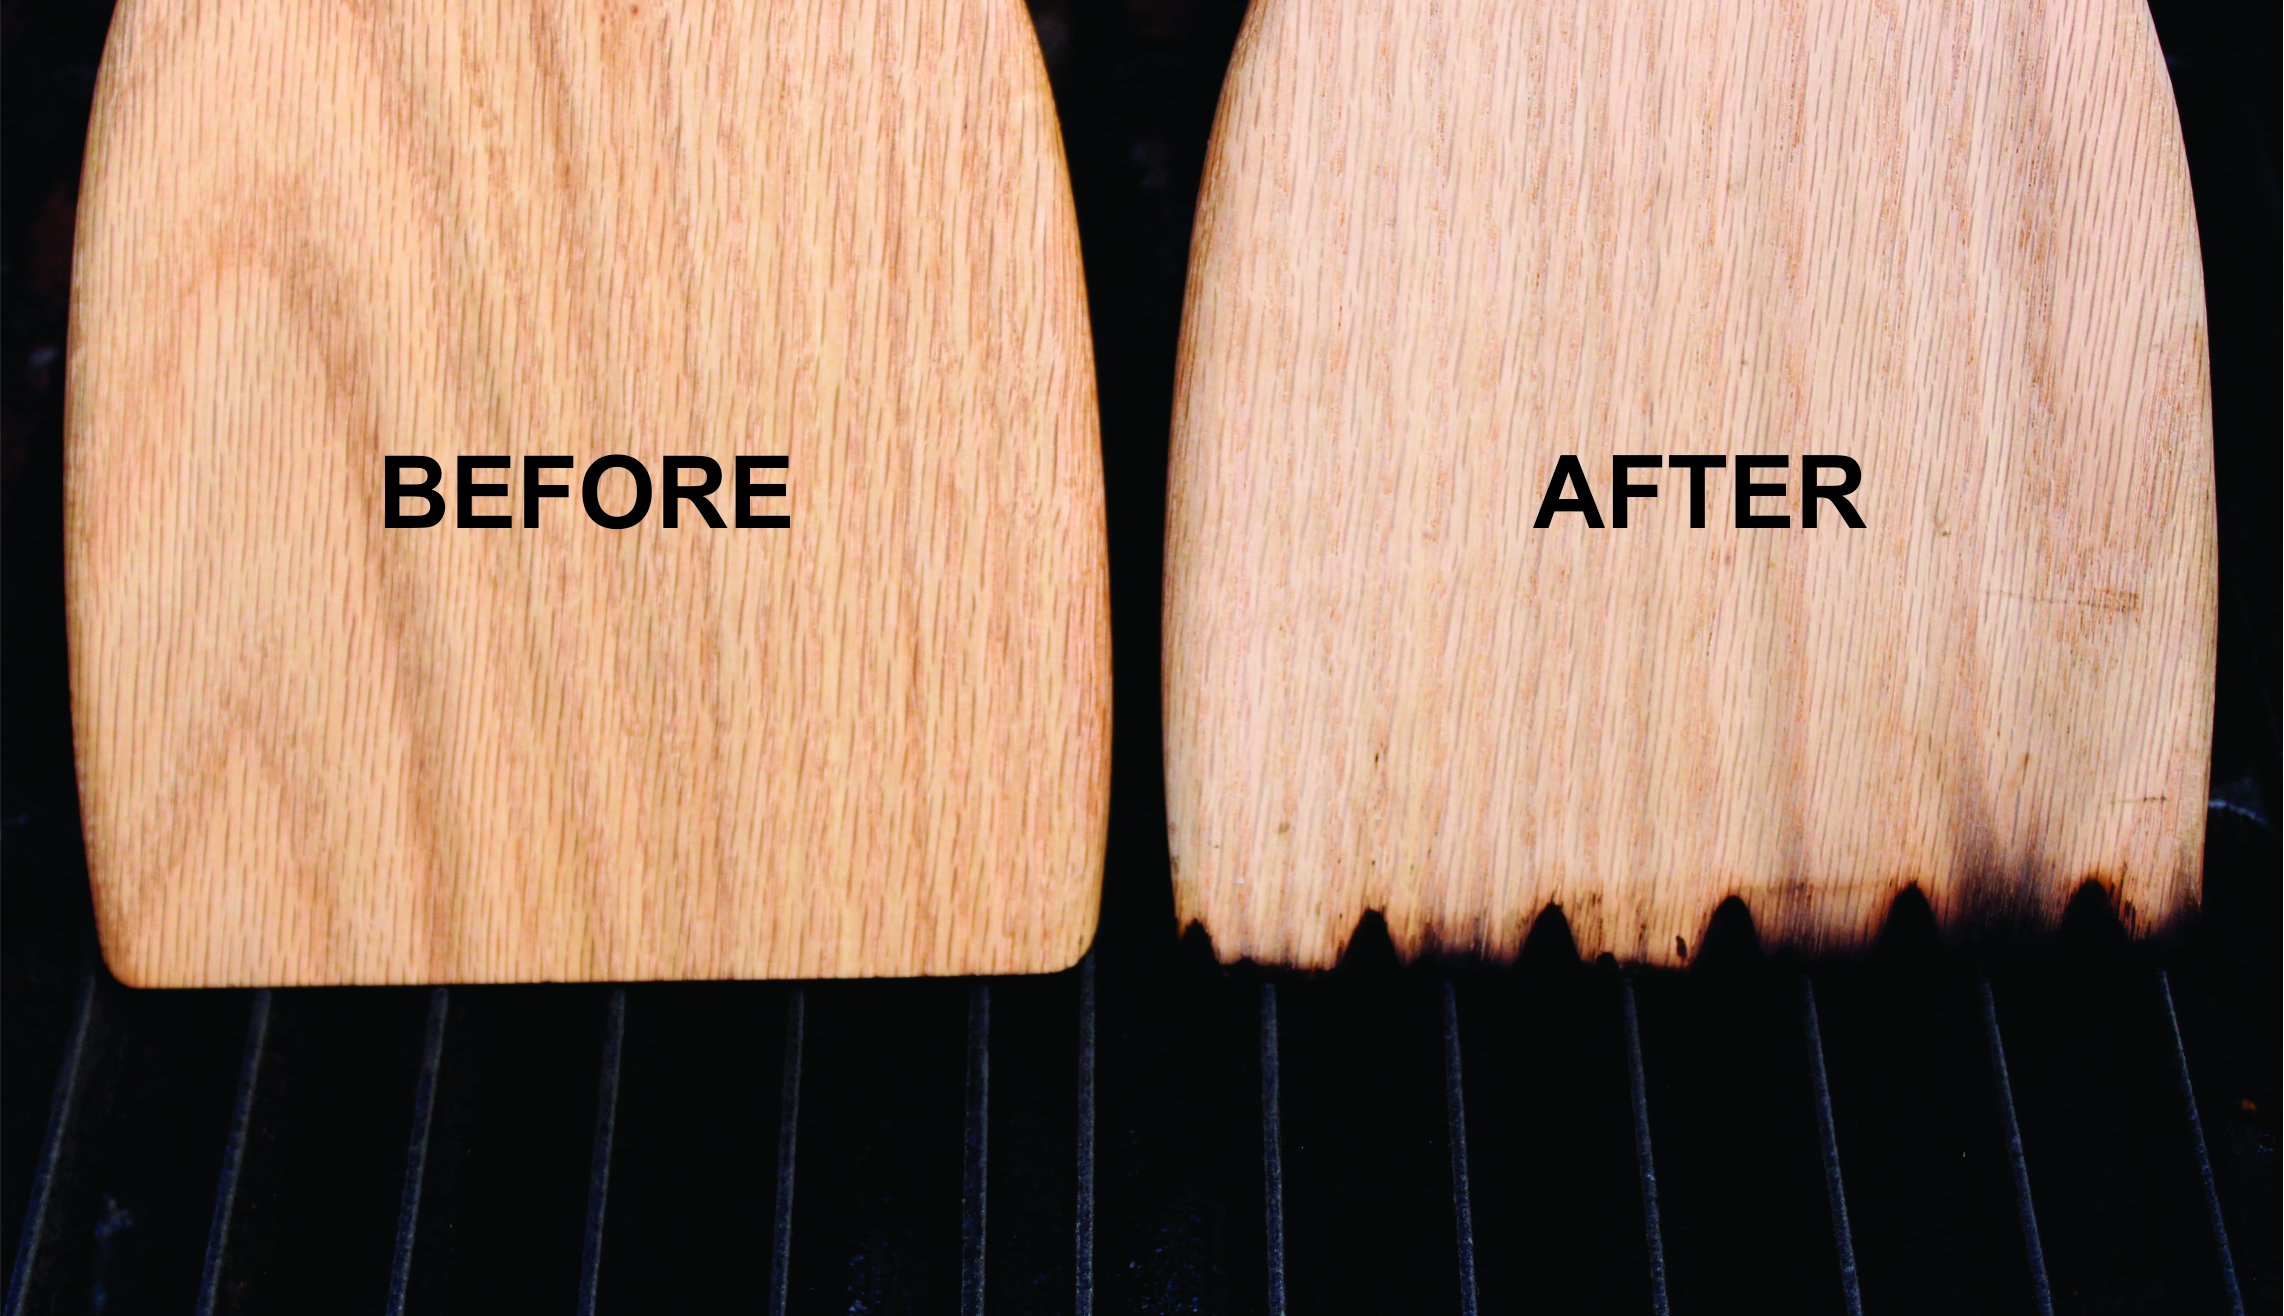 The Grill Oar - Wooden Grill Scraper and Cleaner, Premium Red Oak Wood, Cleans Top and Between Grates, Safe Replacement for Wire Bristle Brush, Made in The USA, Free Koozie Included! by Simply Better (Image #4)